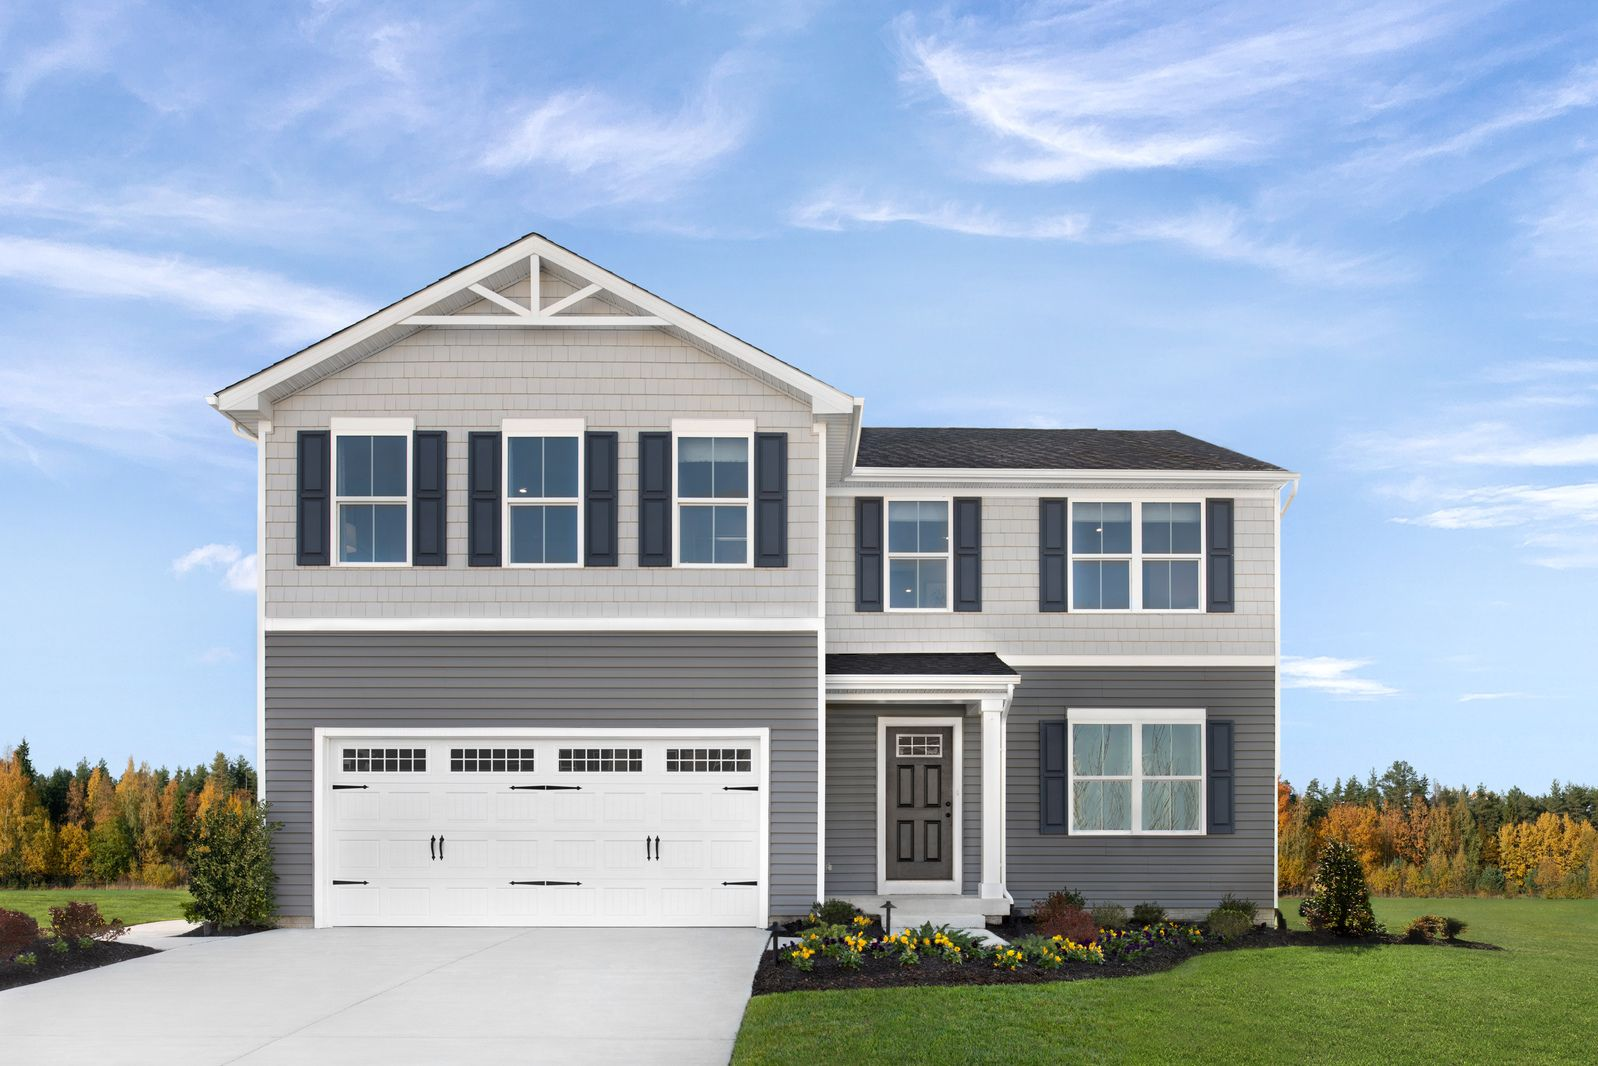 QUAIL RUN MEADOWS – COMING SUMMER 2021:Own an affordable, new construction home with a large backyard in a peaceful setting, just 1 mi from I-65 and 20 min from Franklin/Cool Springs - all from the upper $200s.Join the VIP list today!